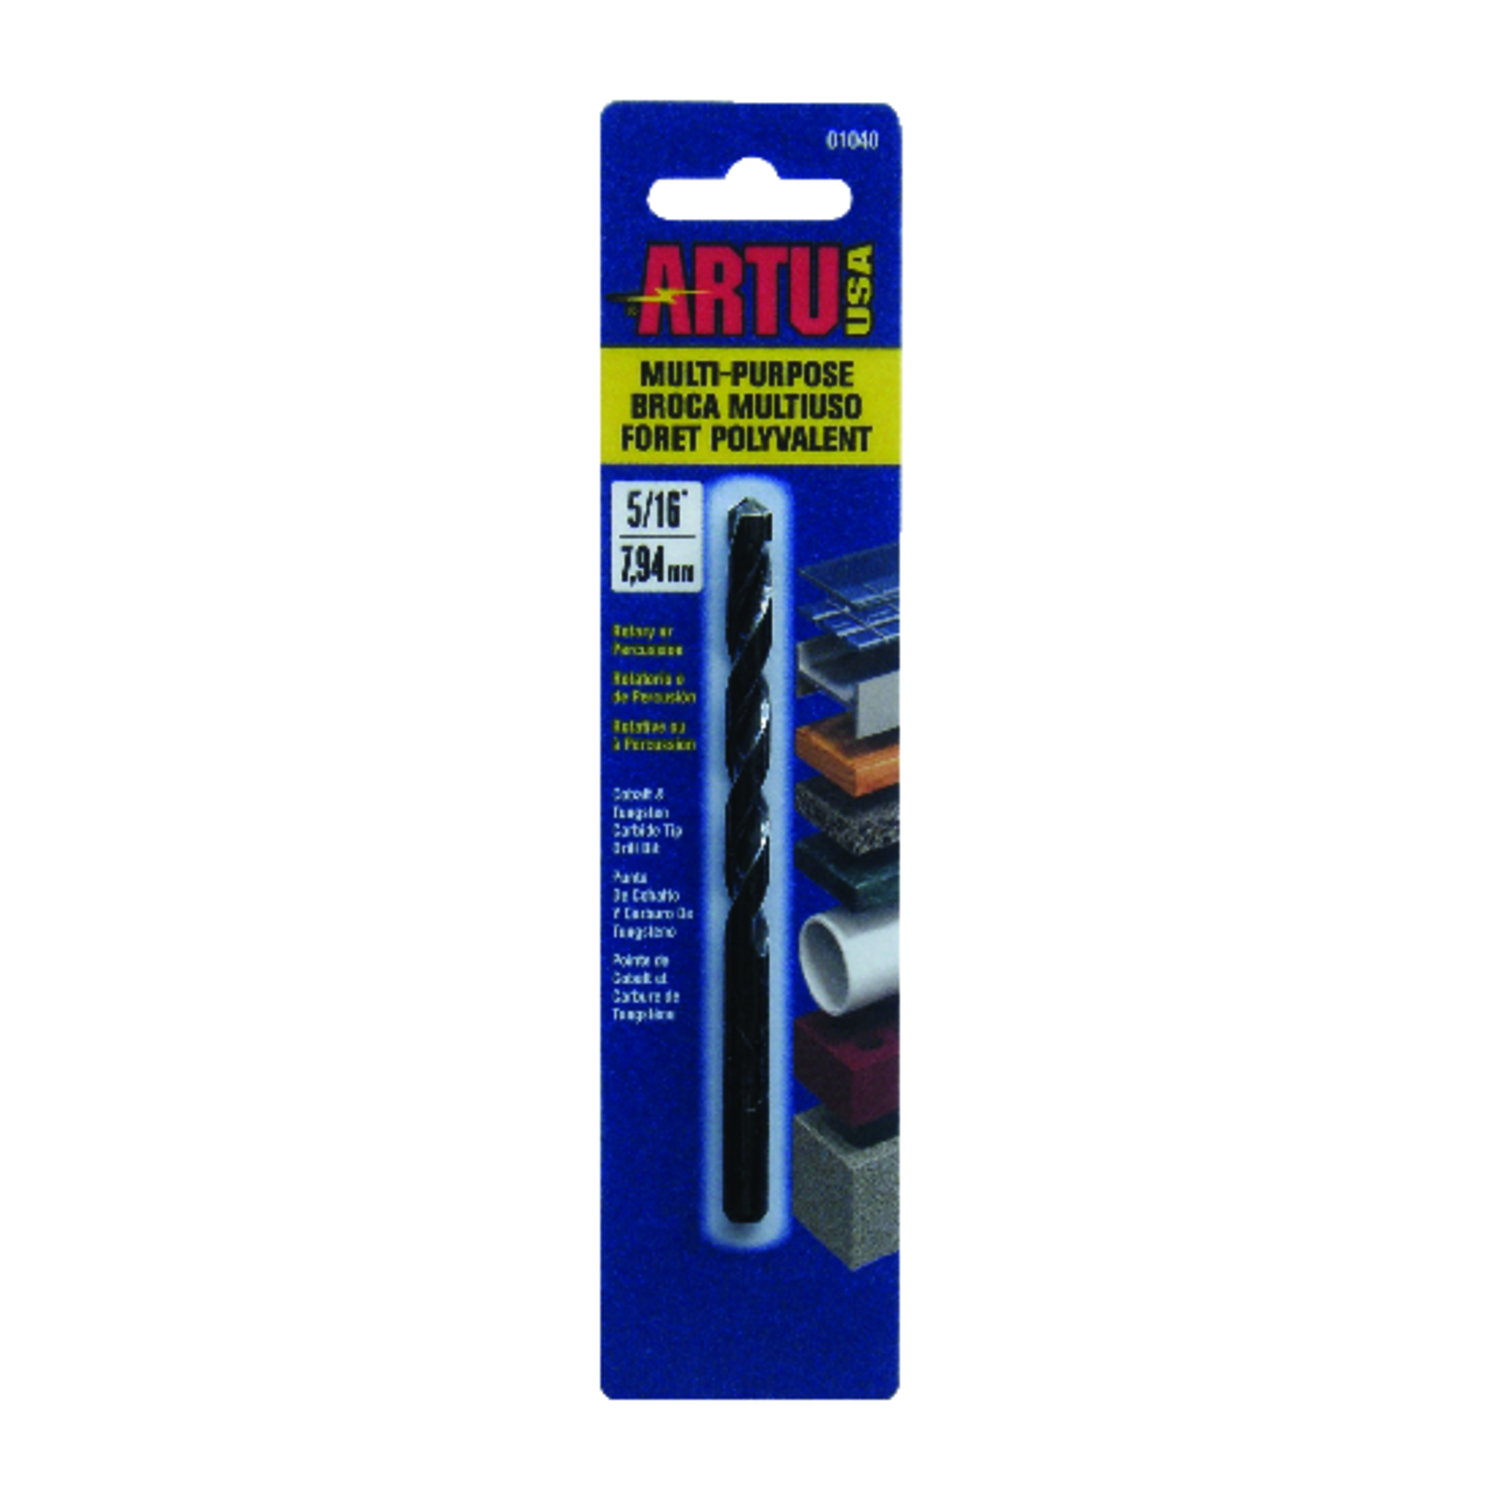 ARTU  5/16 in. Dia. x 4-1/2 in. L Tungsten Carbide Tipped  General Purpose Drill Bit  Round Shank  1